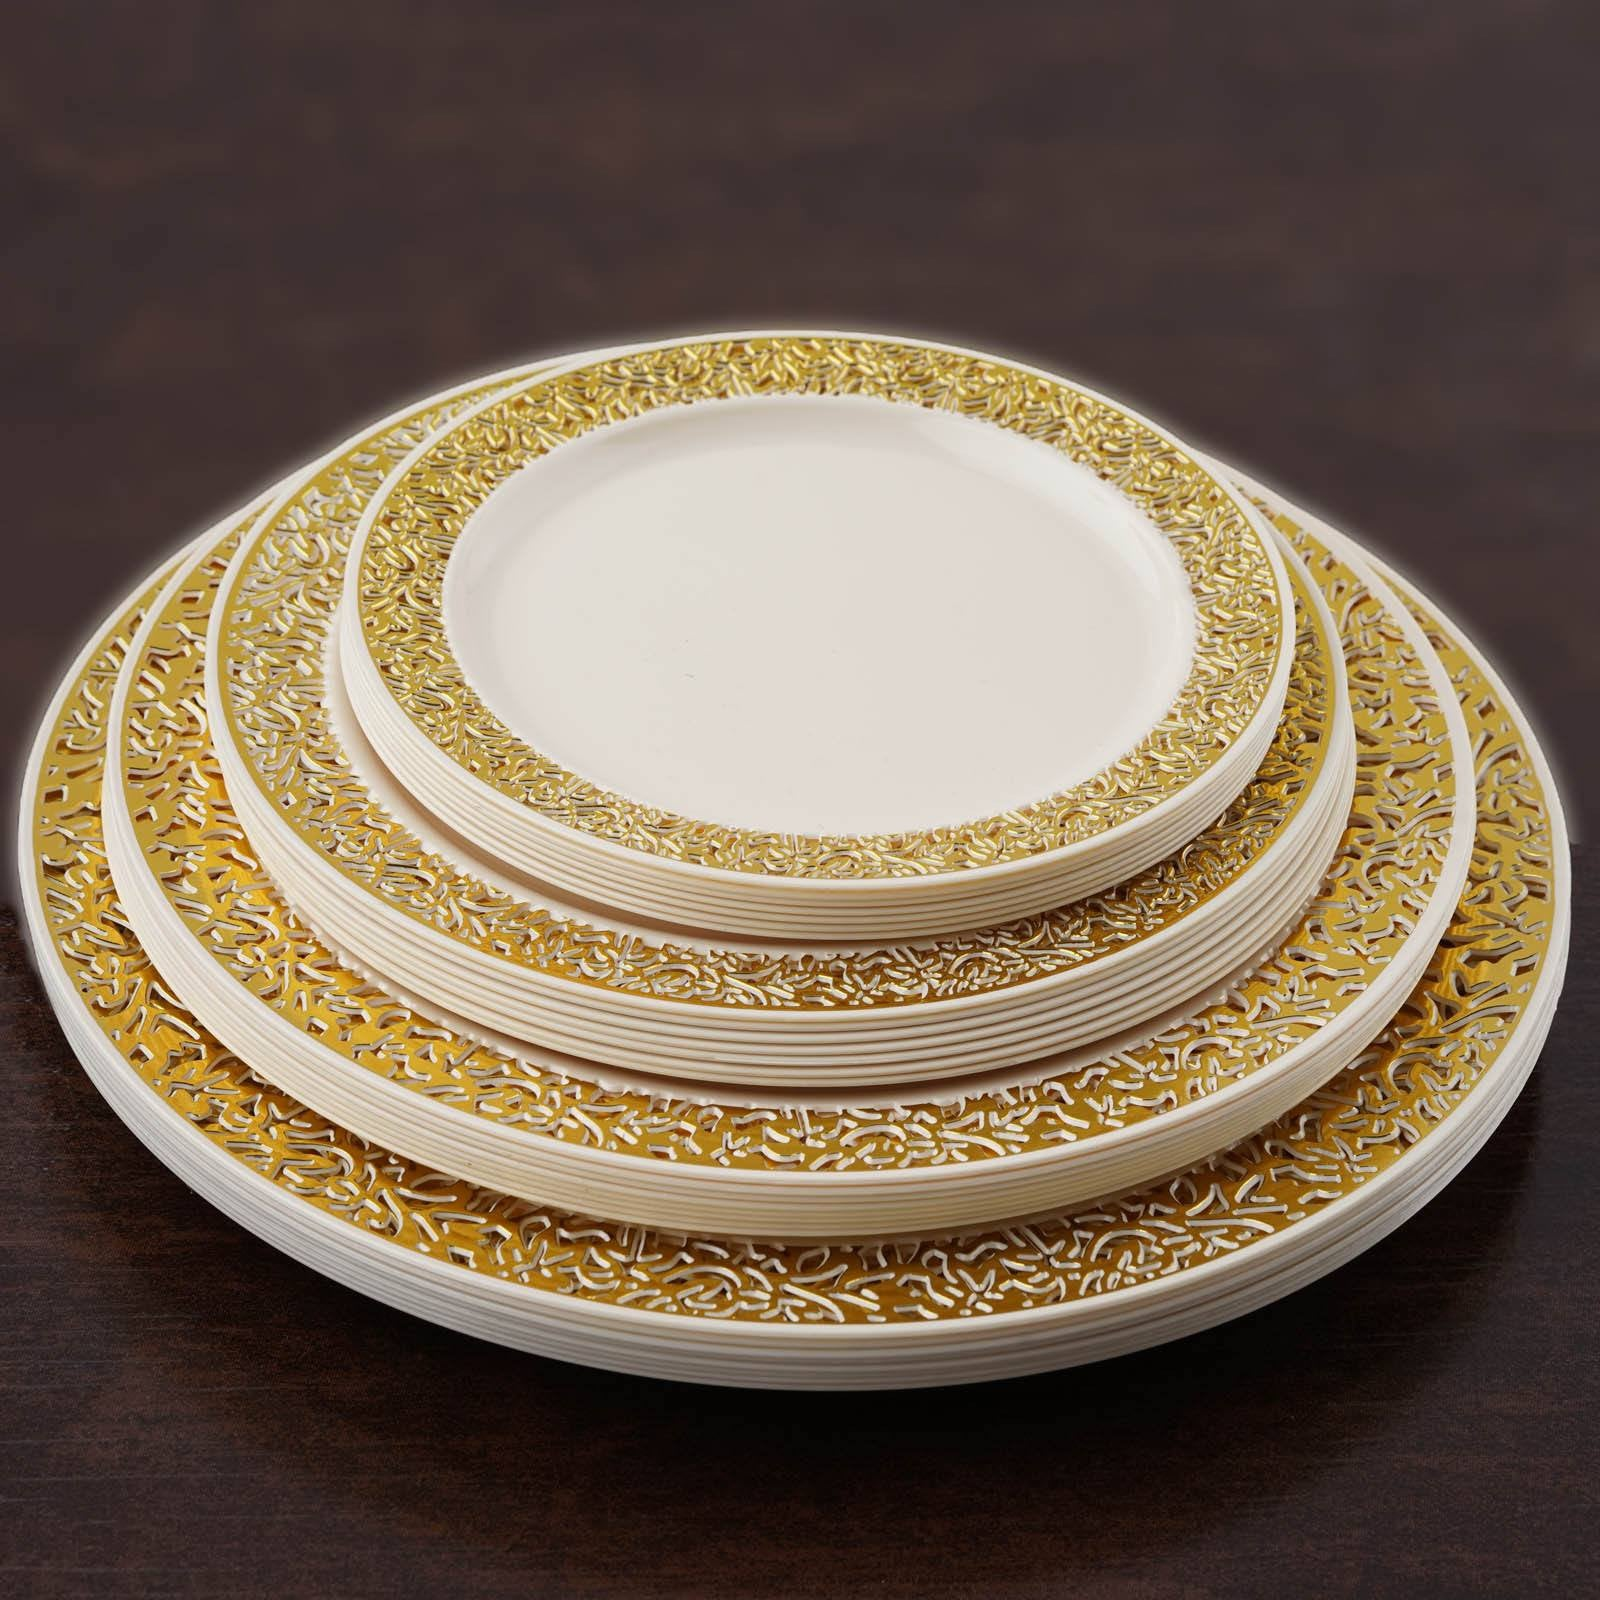 10 Pack - Ivory with Gold Trimmed 10.25  Round Disposable Plate - Picturesque Collection ... & 10 Pack 10